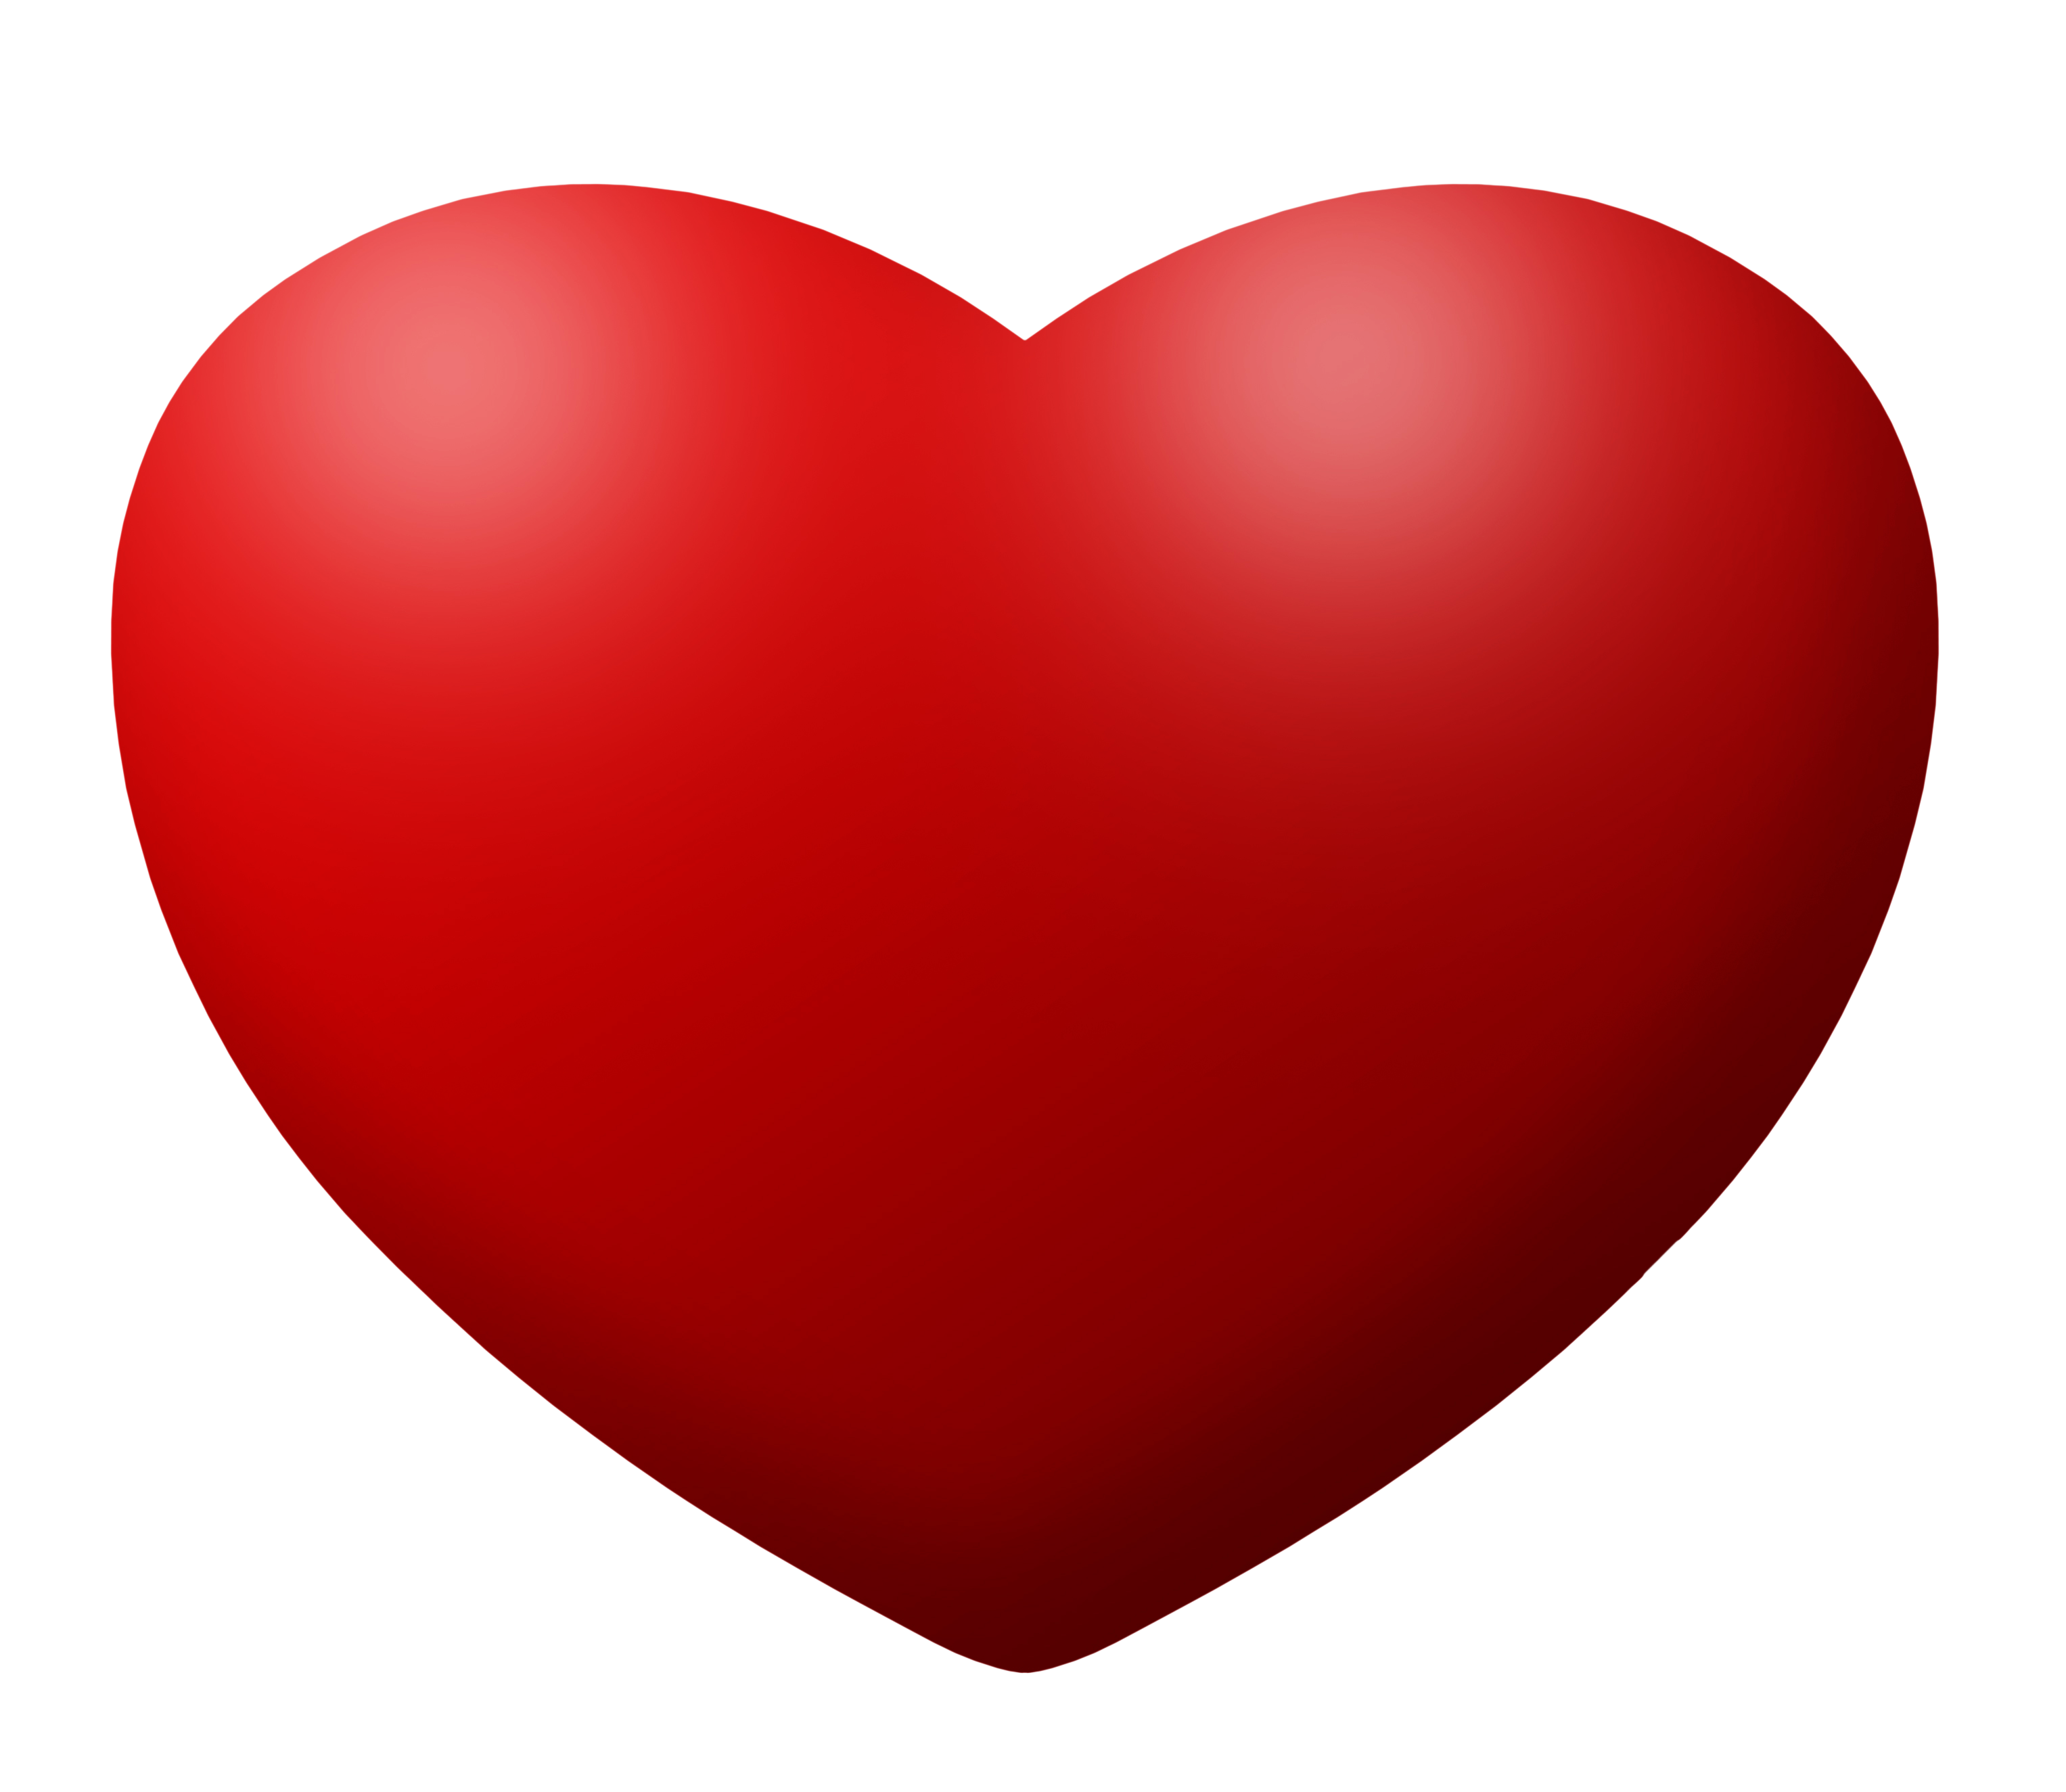 Heart PNG Image, Free Download - Heart PNG